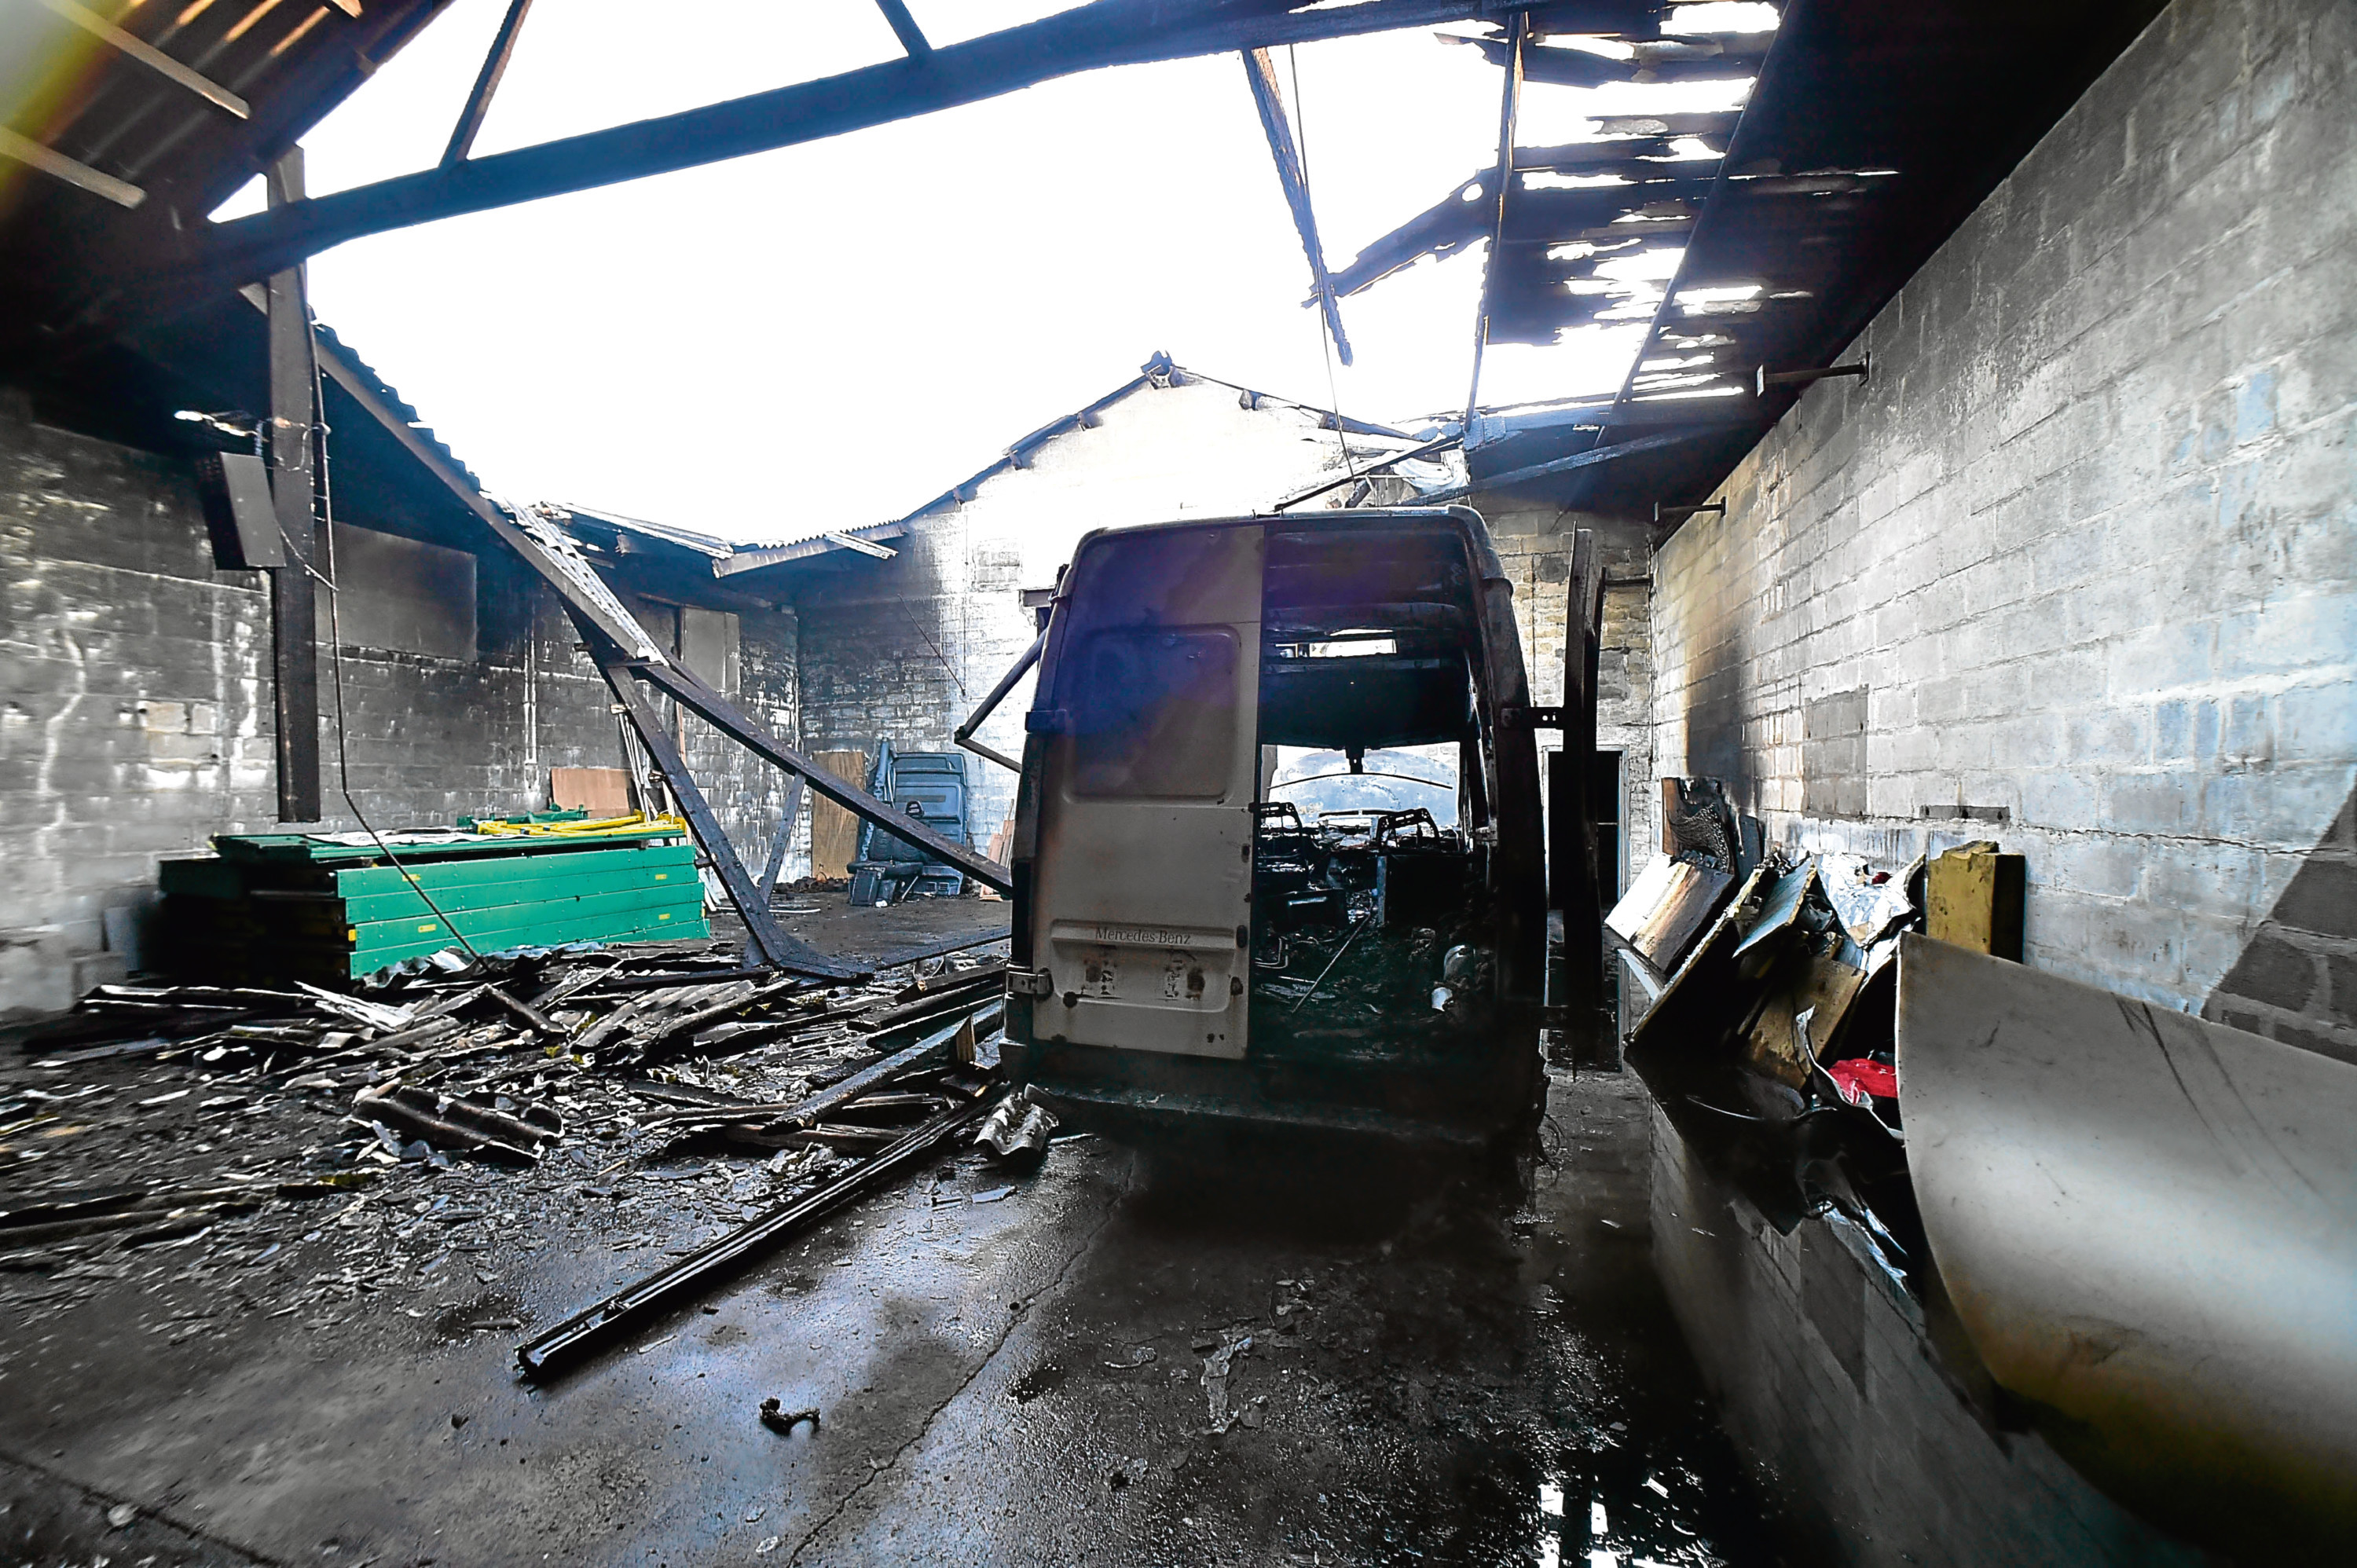 The fire ripped through the outbuilding in Rothienorman